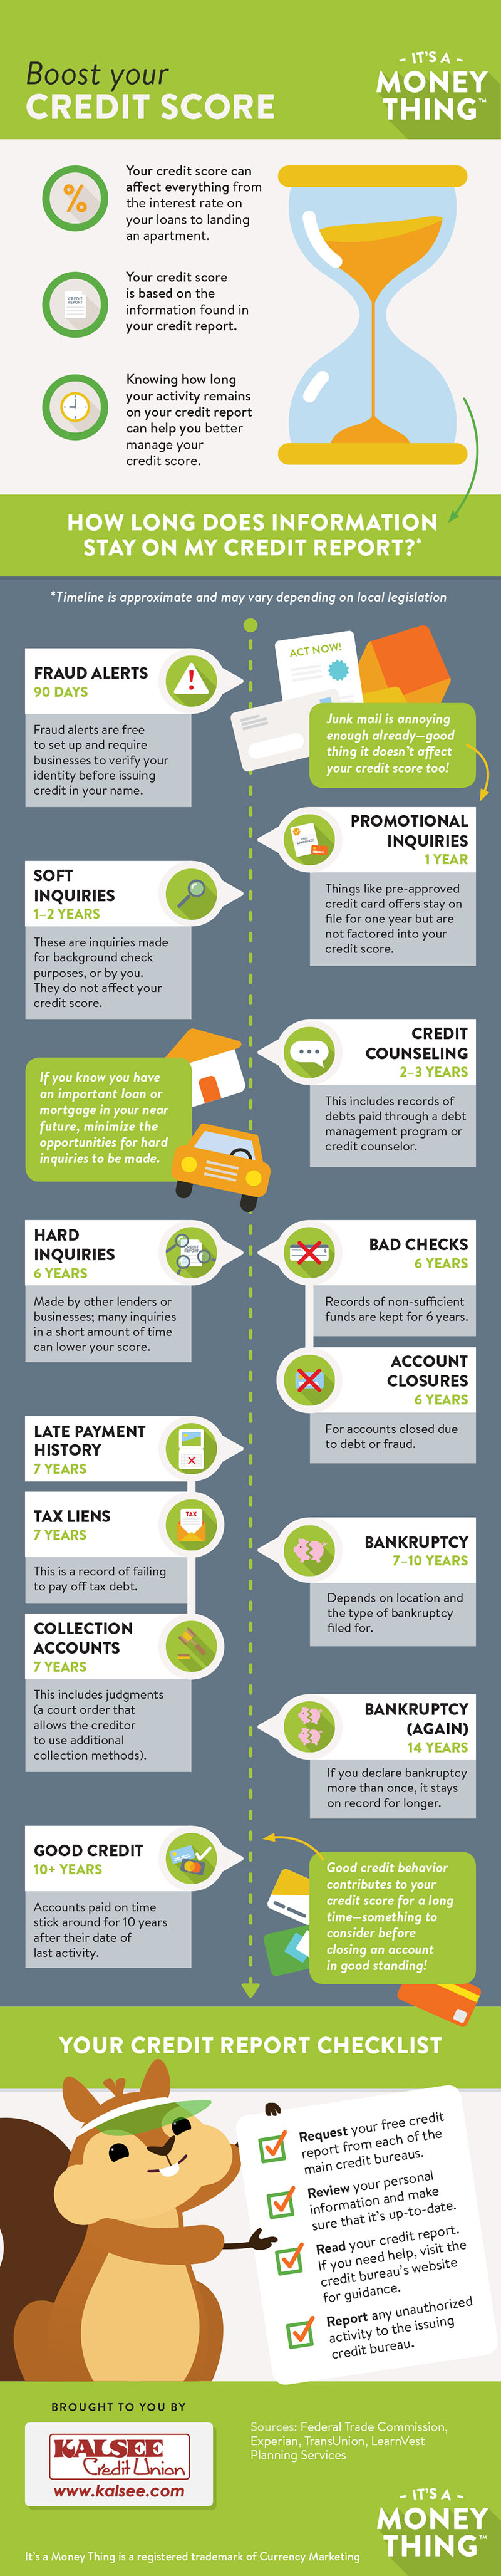 boost your credit score infographic, click for transcription